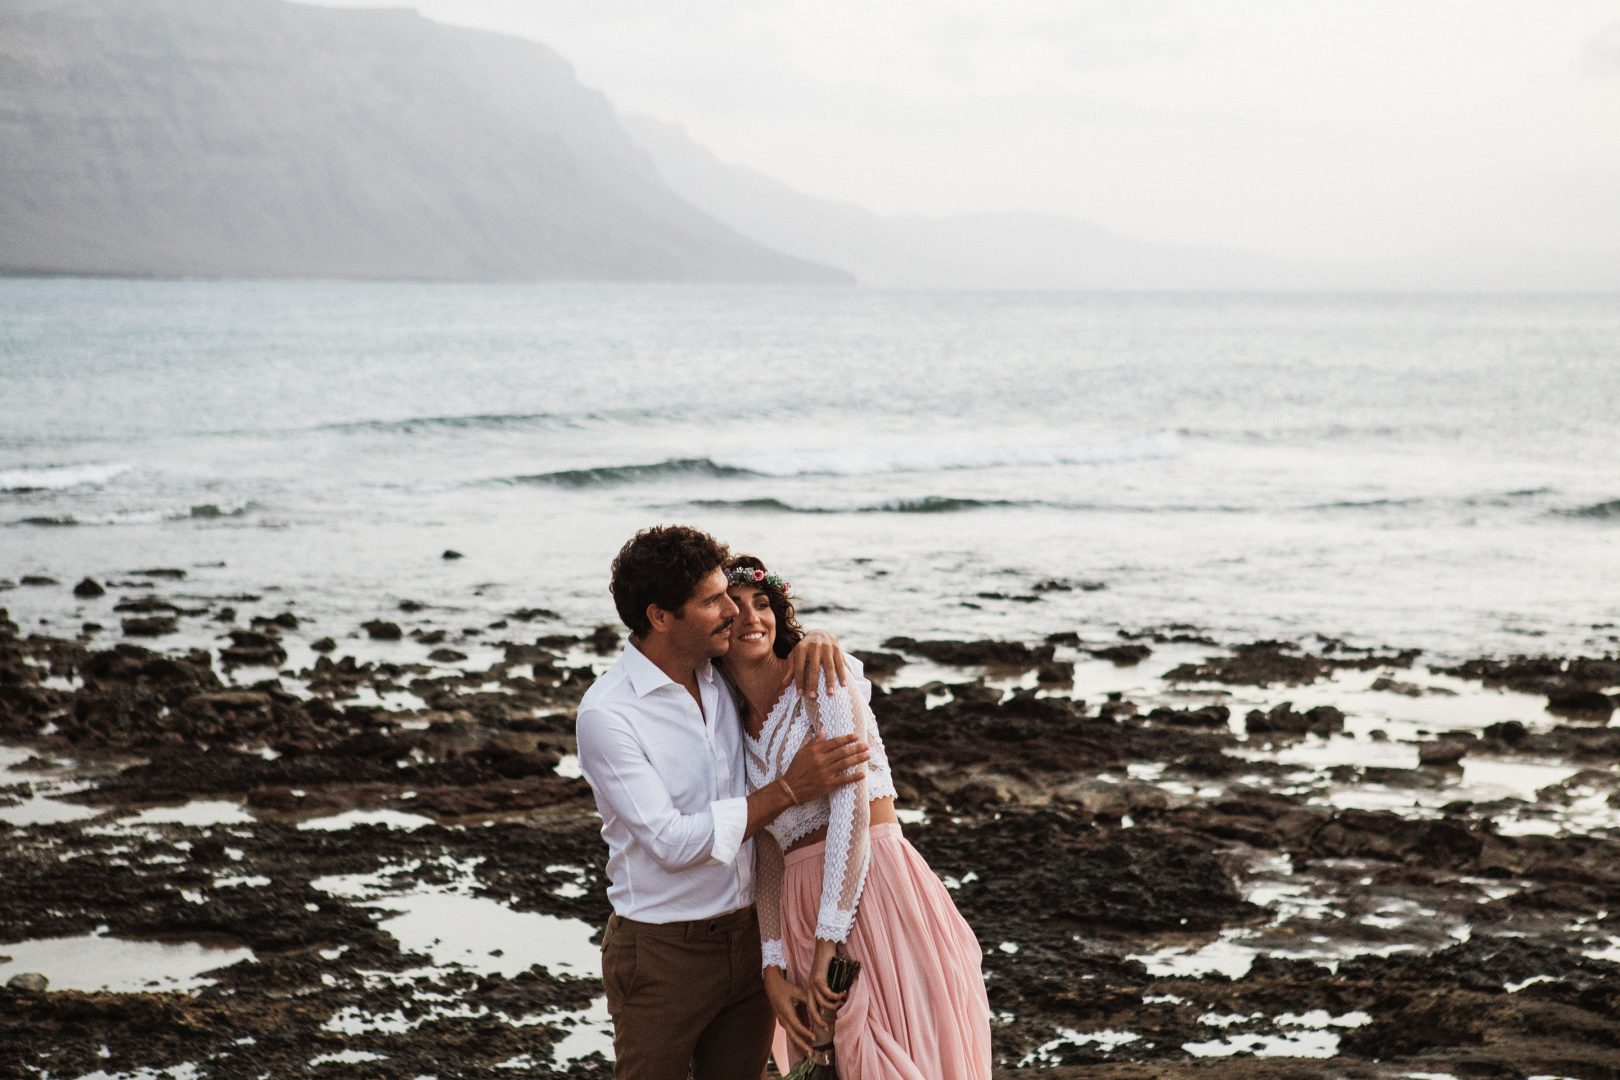 Destination Wedding at Sunset in the Canary Islands, Spain